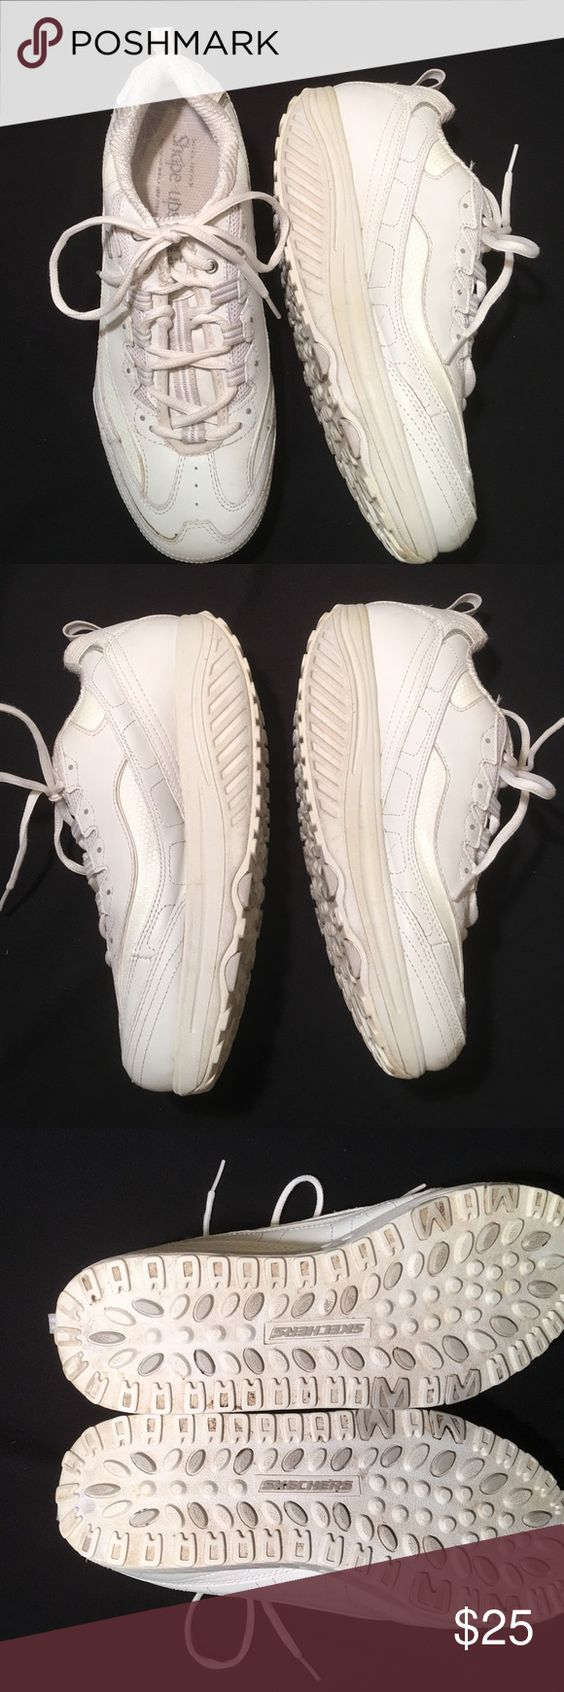 Skechers Shape Ups White Size 10 Women's One of the most comfortable fun shoe to wear. They always seem to be easier on my joints when I walk. Hardly worn. Excellent condition. Non smoking home. Fast shipper Skechers Shoes Athletic Shoes